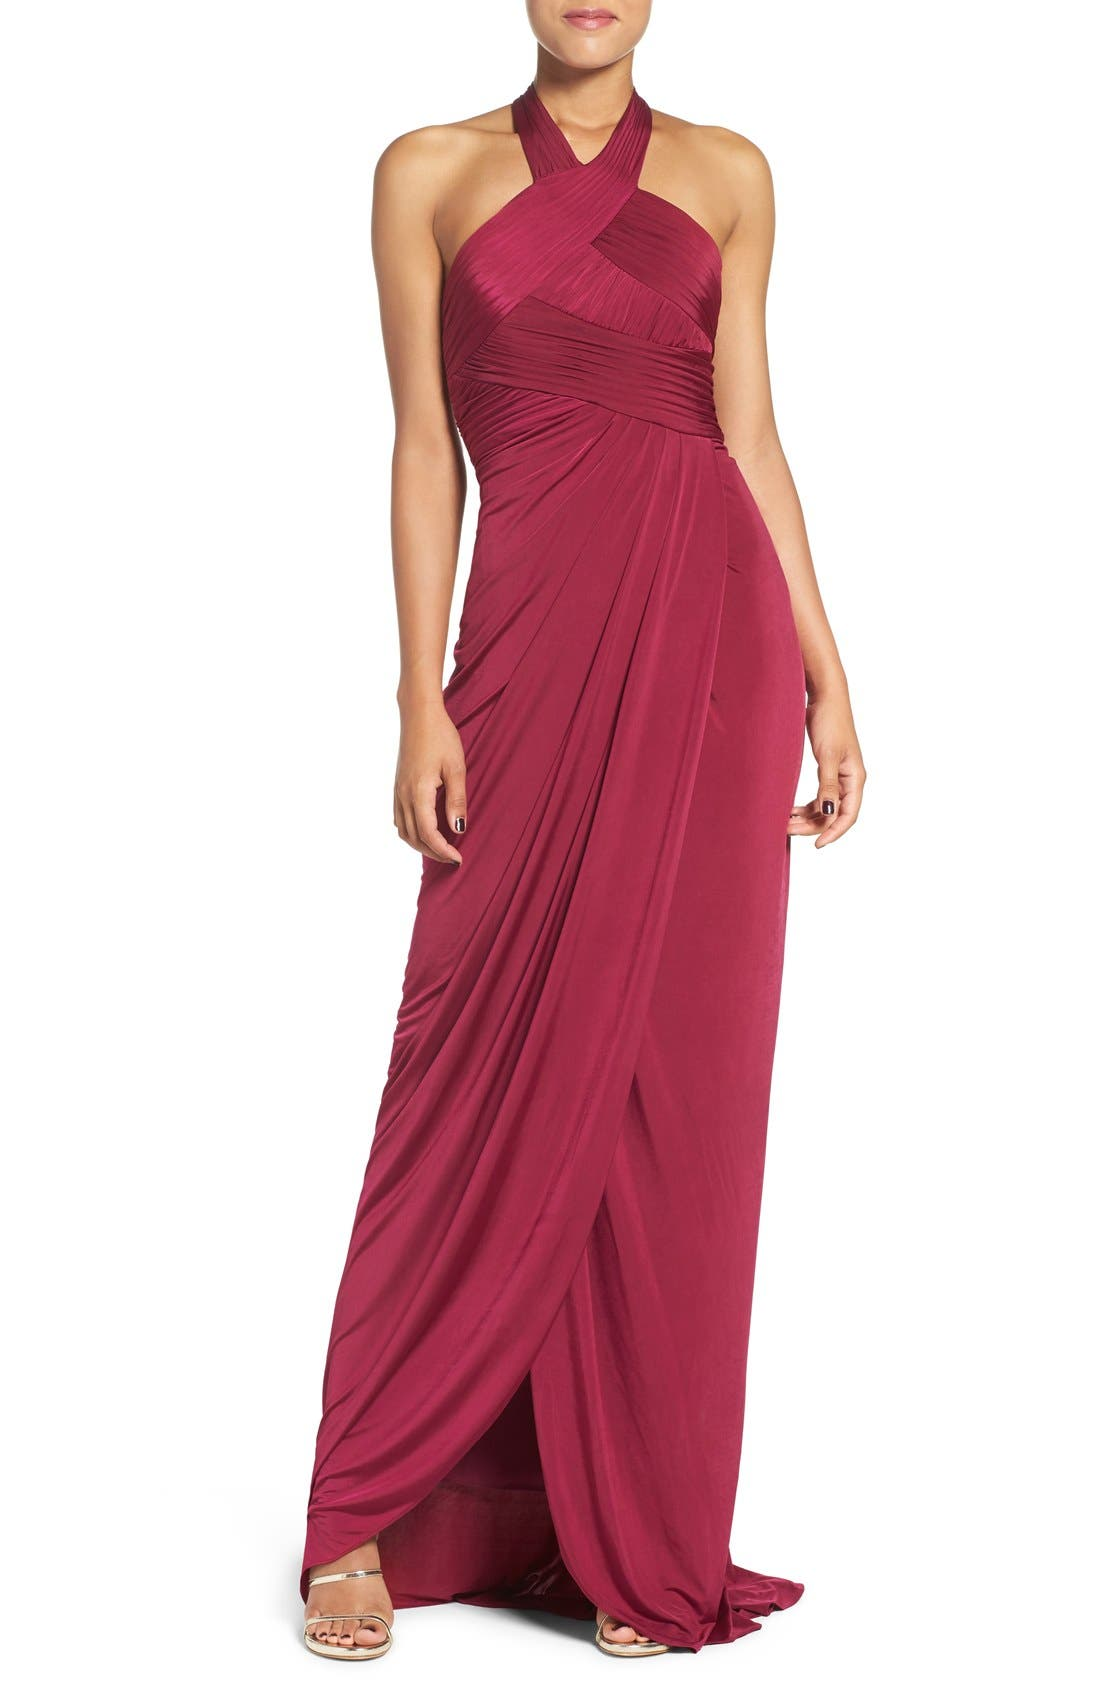 Alternate Image 1 Selected - Adrianna Papell Jersey Halter Dress (Regular & Petite)